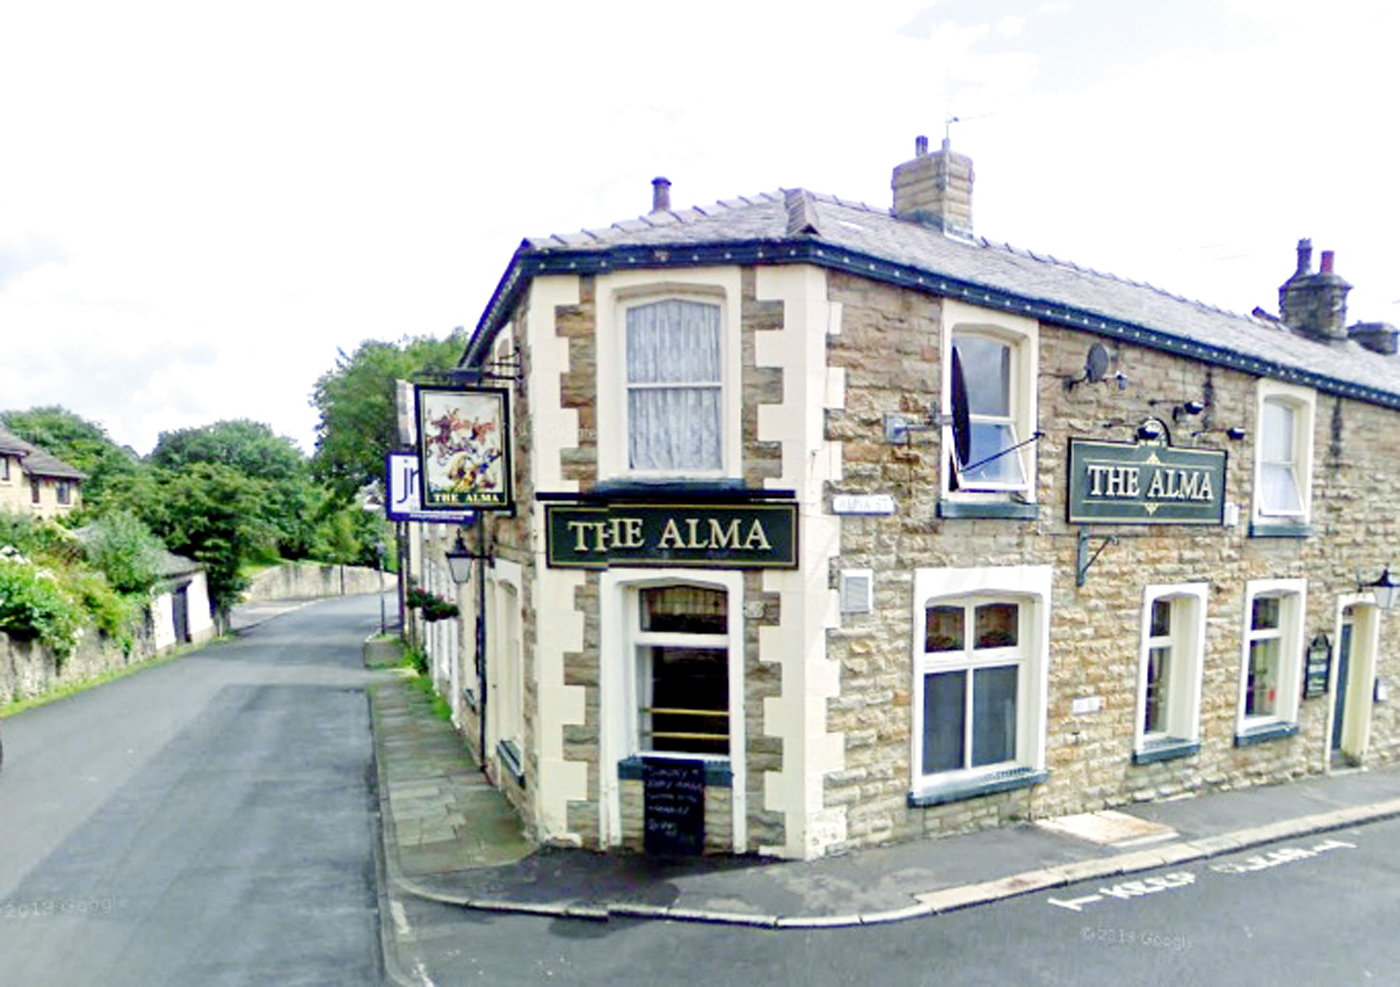 The Alma Inn, Padiham, opened in 1897